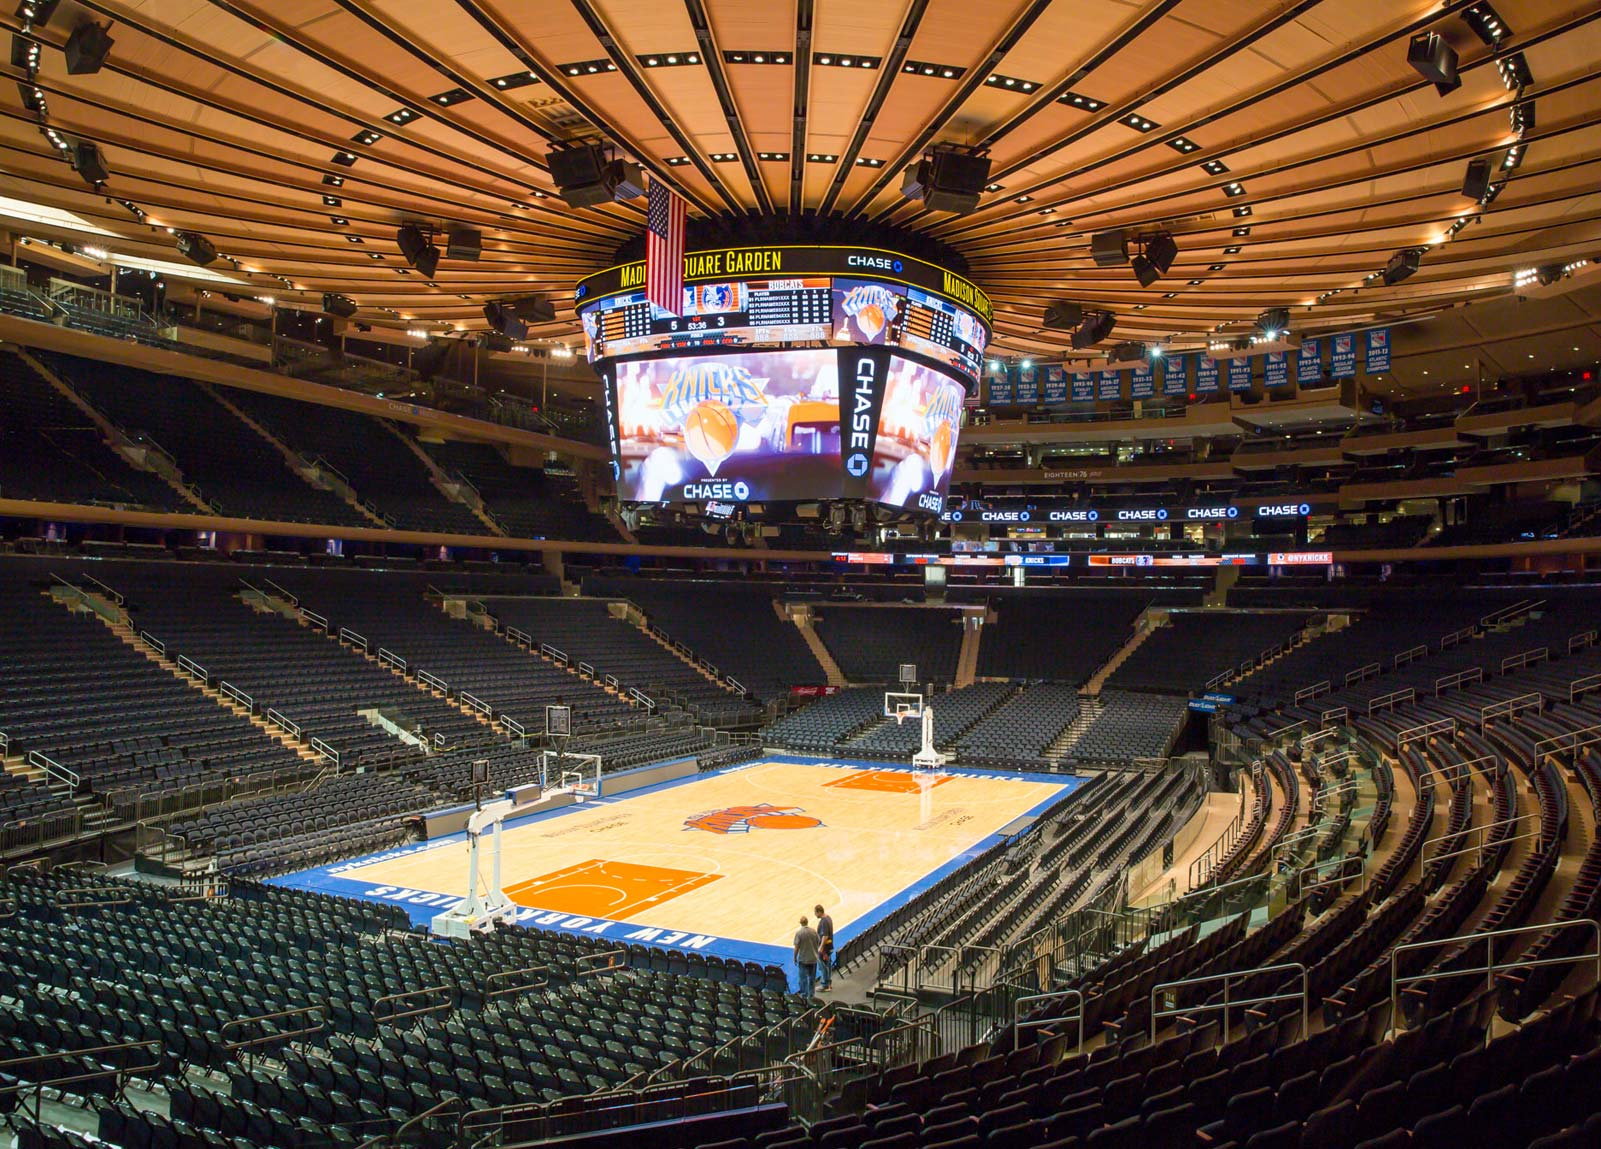 Madison square garden madison square gardens seating Madison square garden basketball